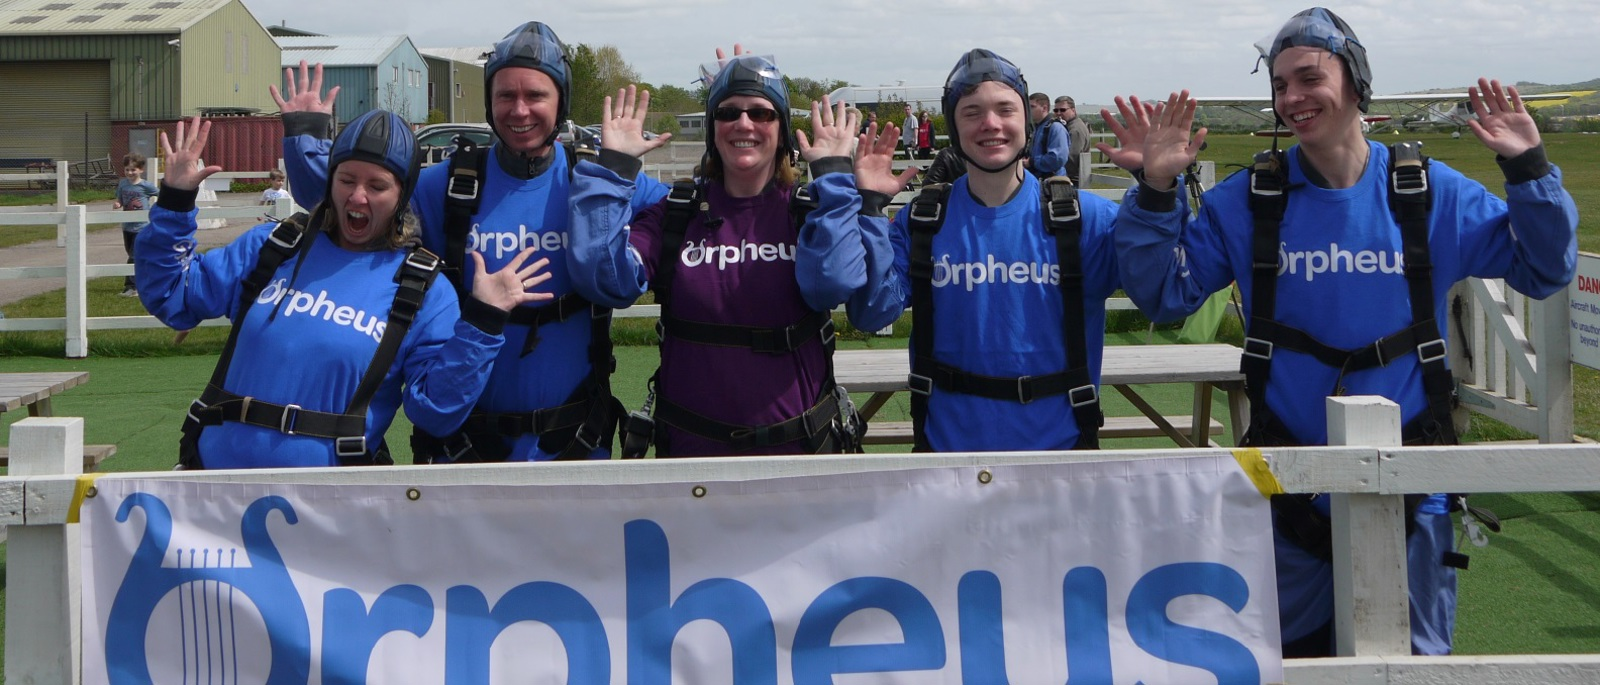 Sky dive in aid of Orpheus